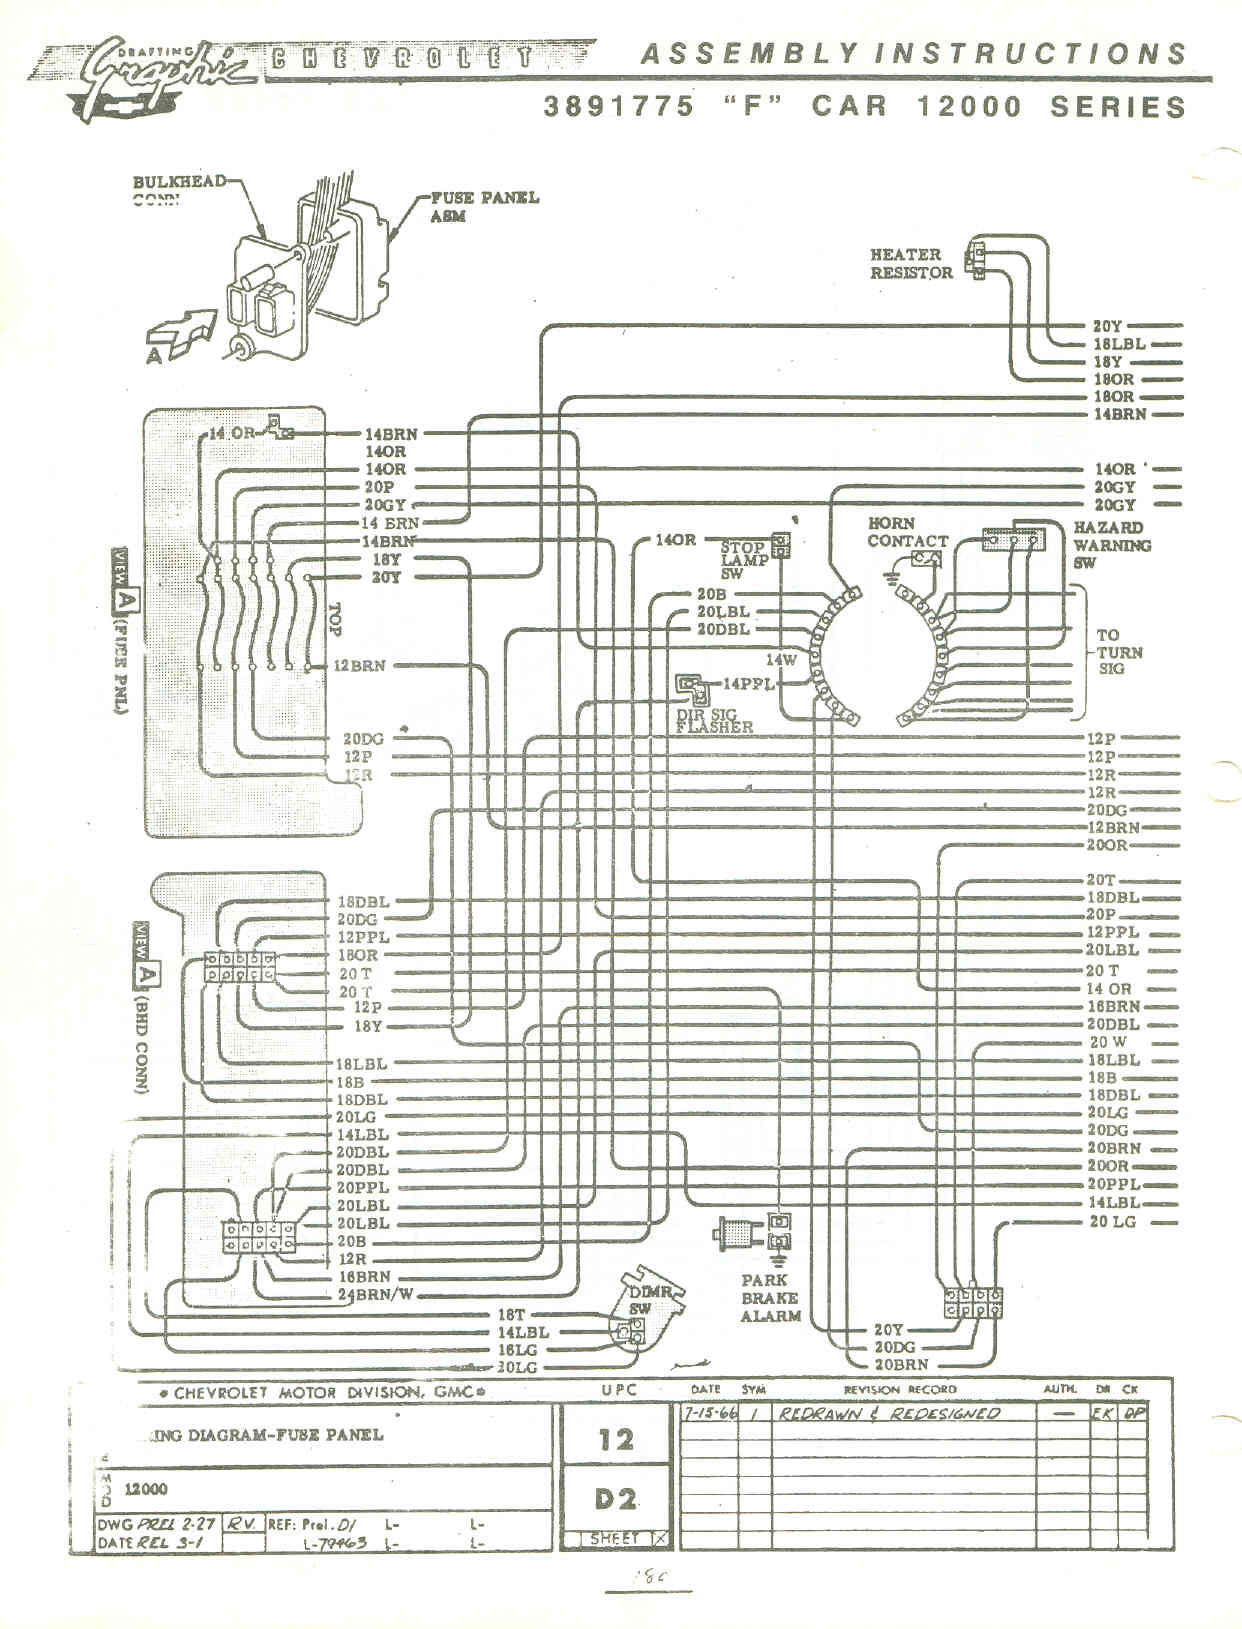 1967 chevelle wiring diagram 1967 image wiring diagram 67 chevelle ignition problem no spark in on position page 2 on 1967 chevelle wiring diagram